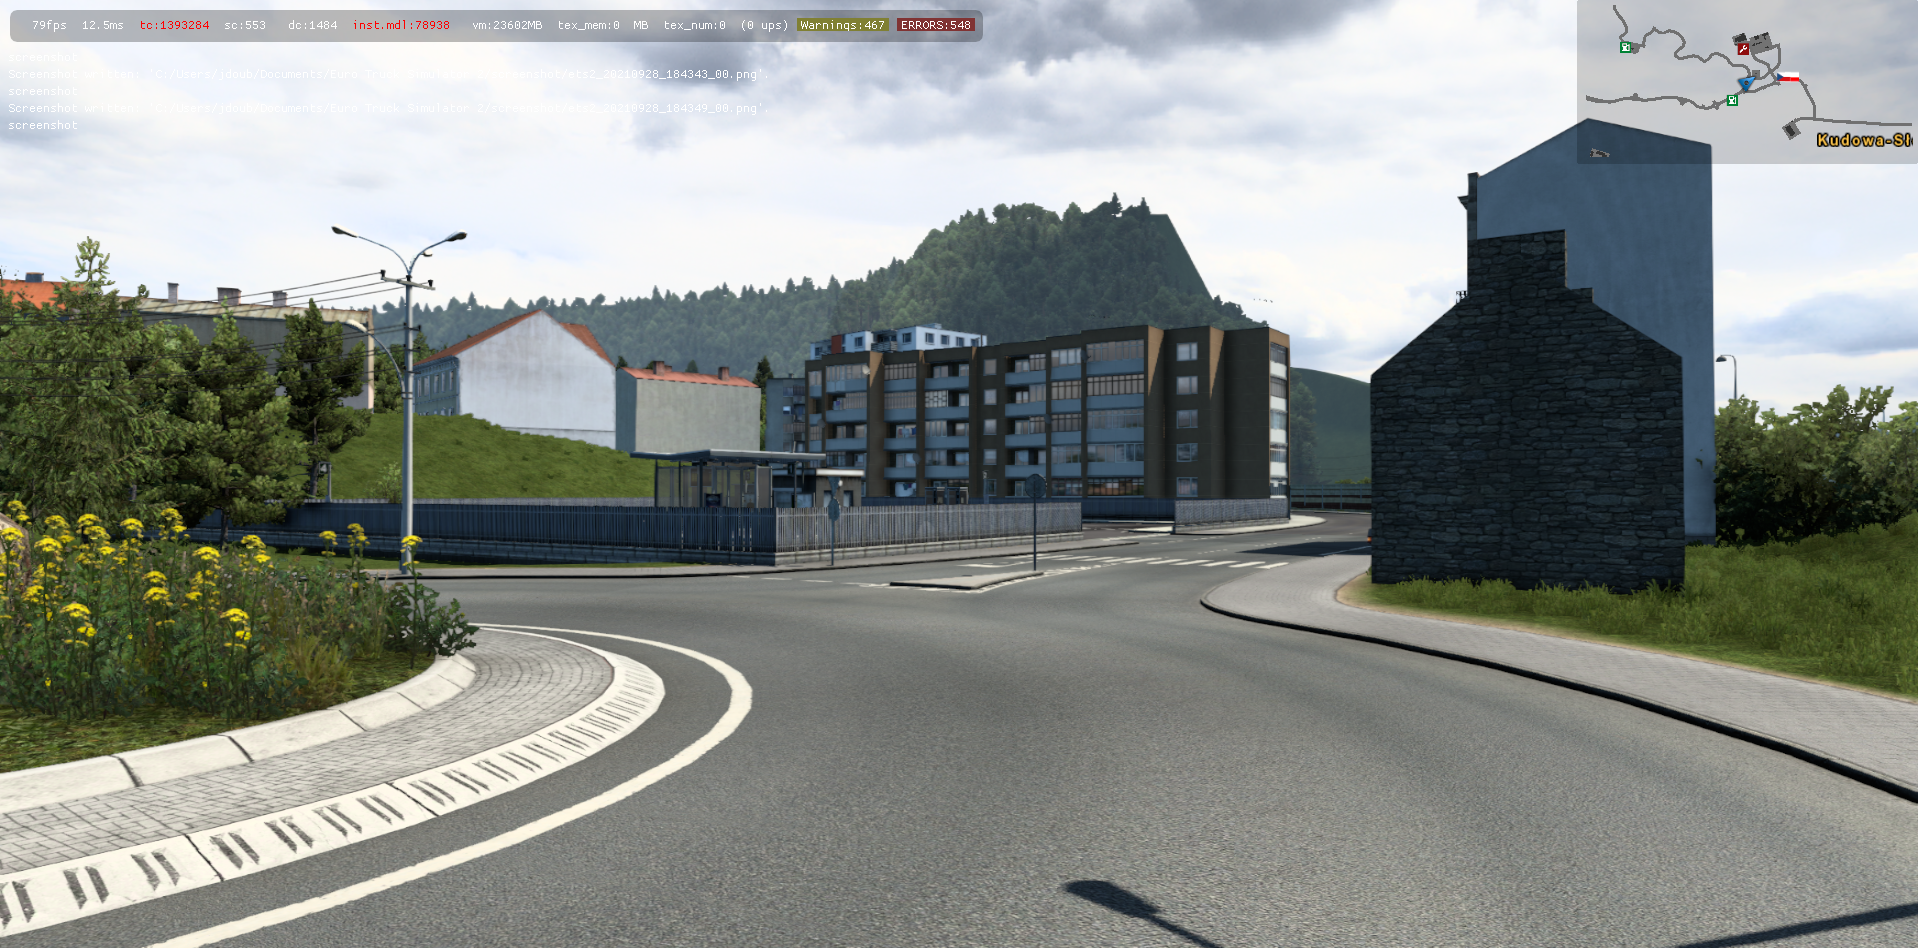 ets2_20210928_184355_00.png